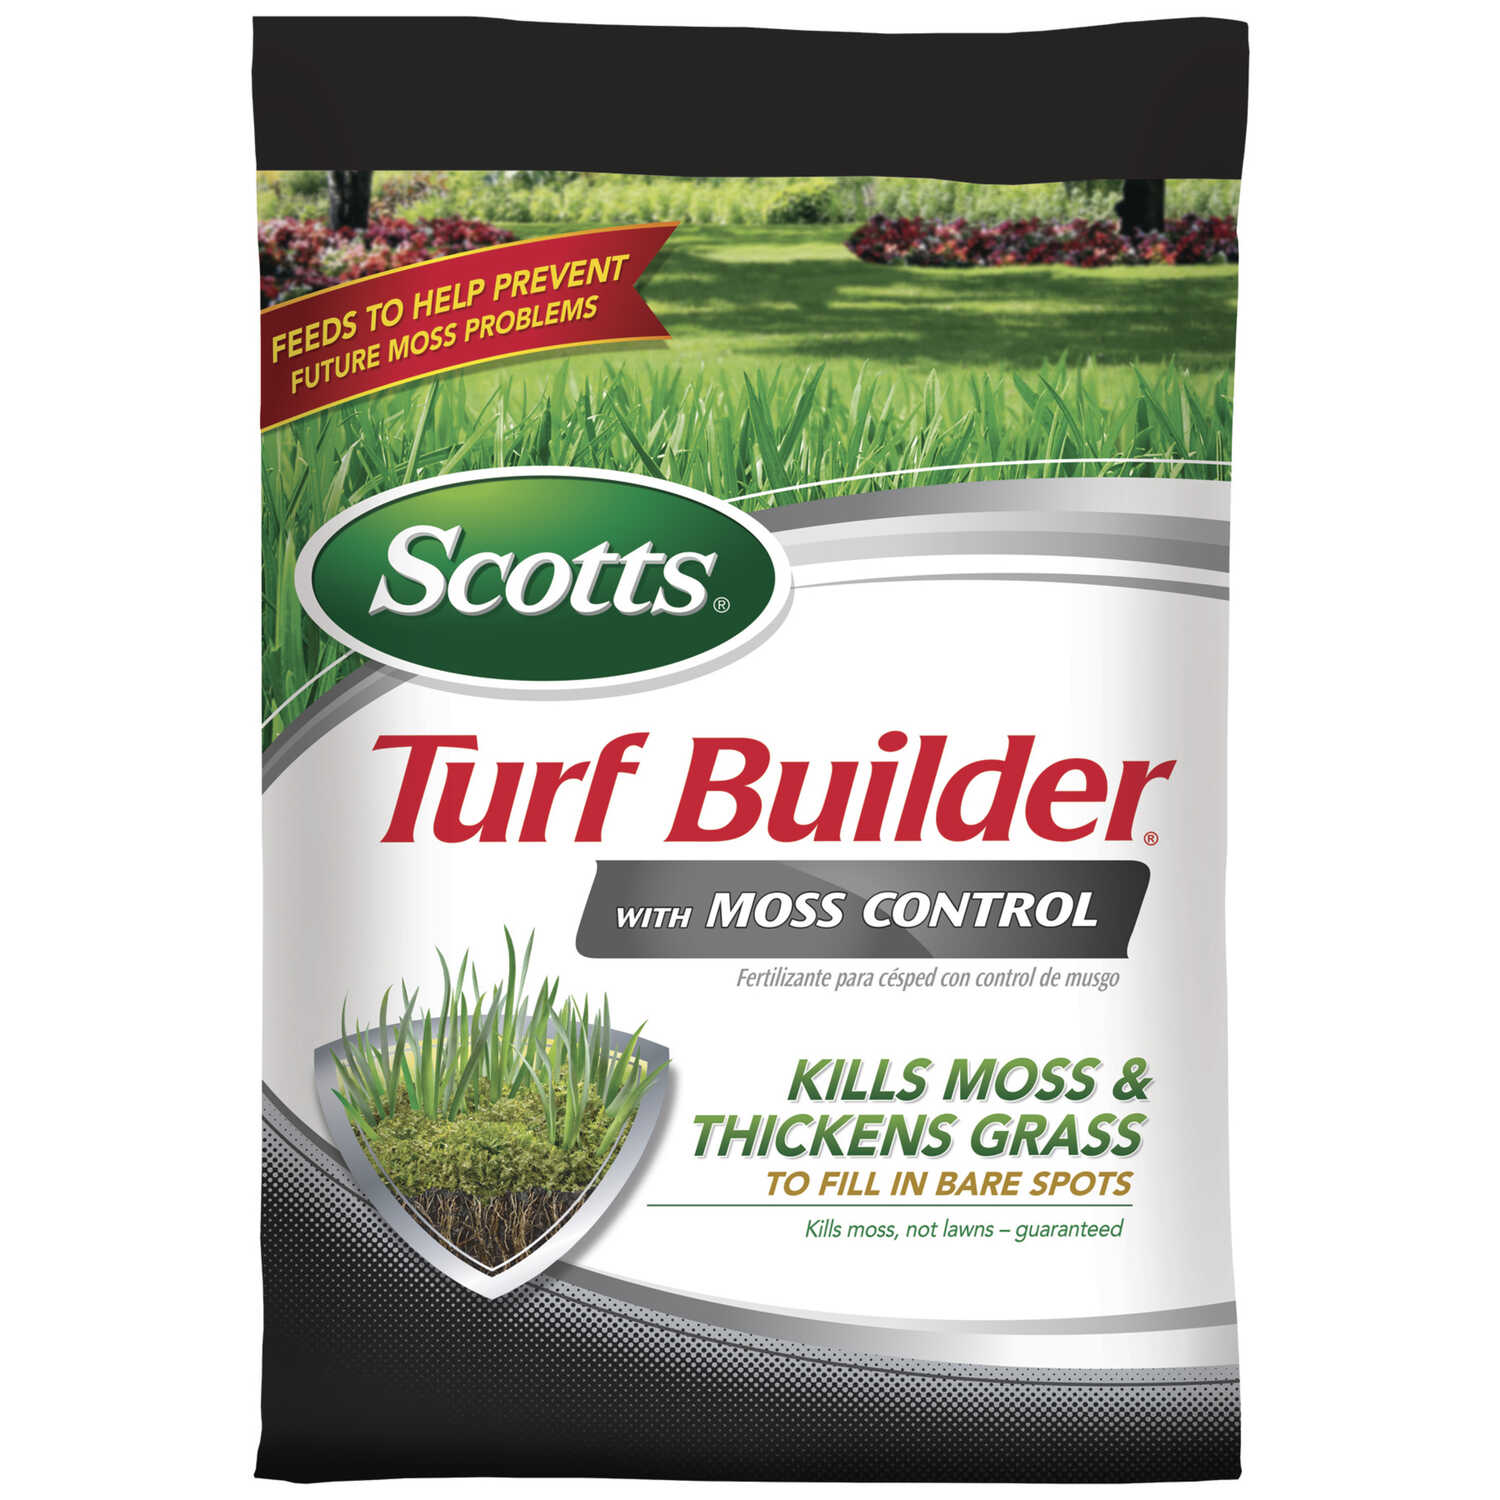 Scotts  Turf Builder  23-0-3  Lawn Fertilizer With Moss Control  For All Grass Types 26.31 lb. 5000